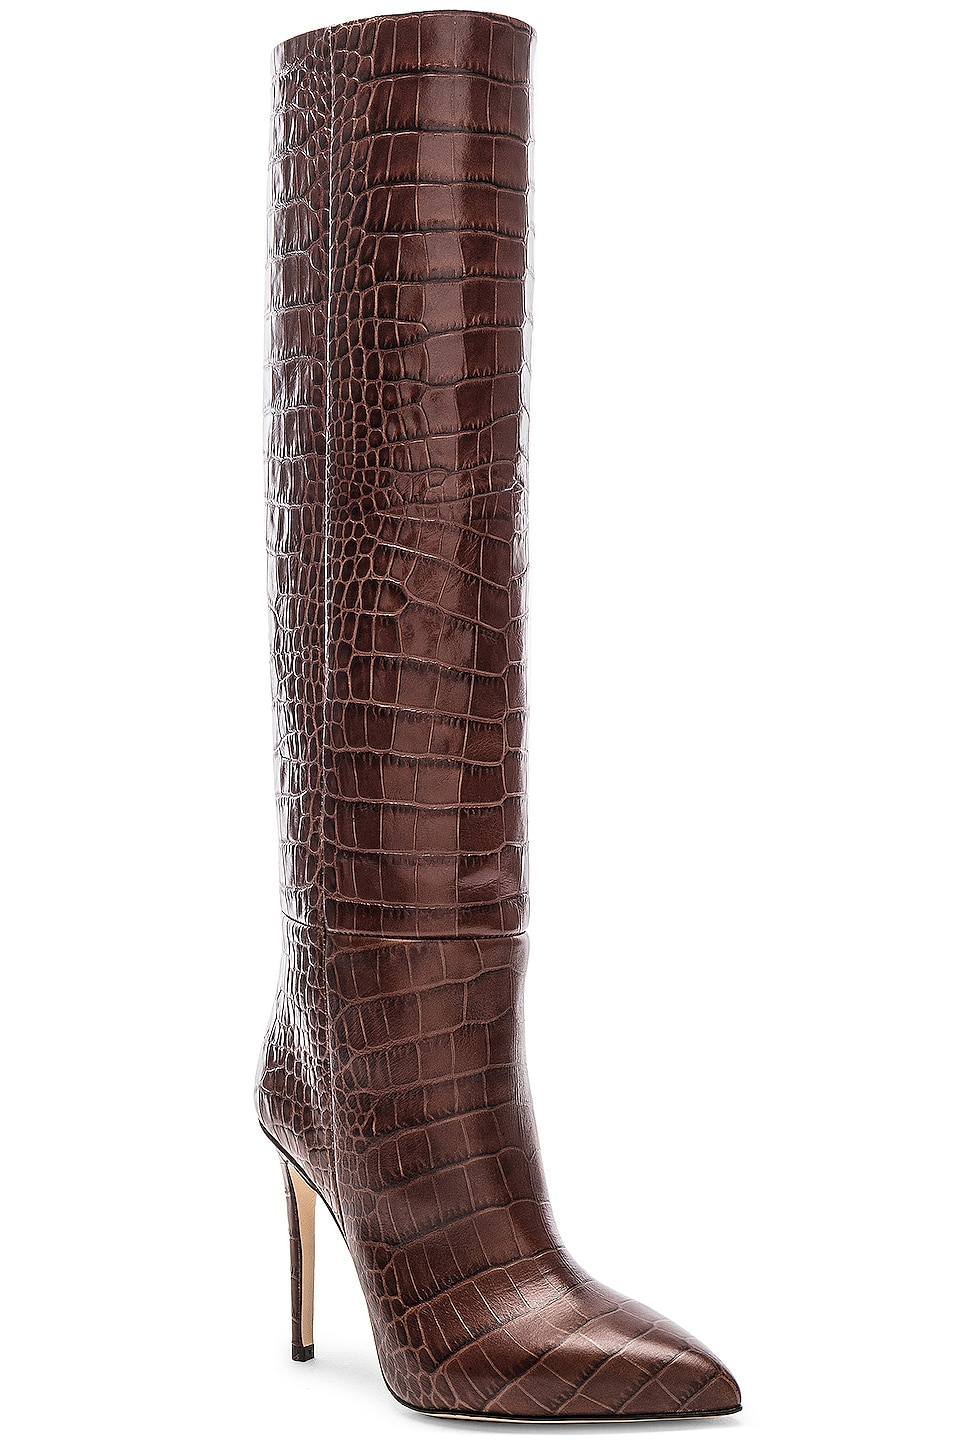 Image 2 of Paris Texas Stiletto Knee High Boot in Brown Croc